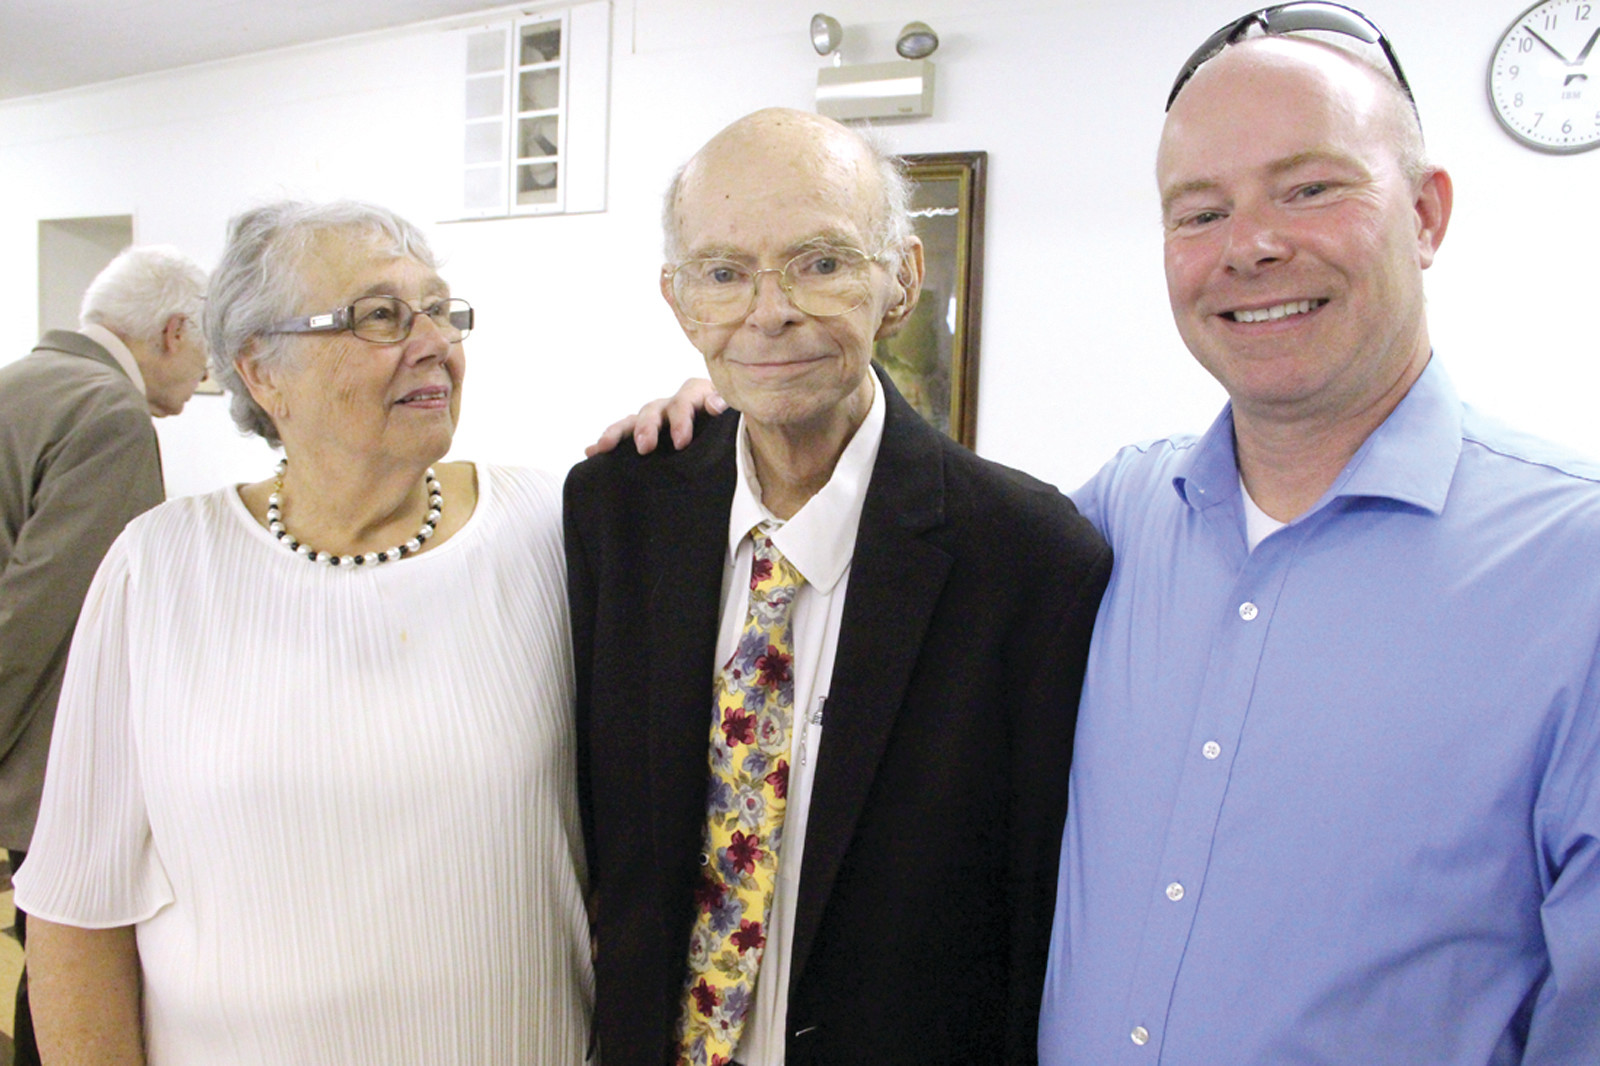 FINAL SERMON: The Rev. Warren Marble, pastor of the First Congregational Church of Warwick, made his retirement official Sunday. Pastor Marble has been a member of the church since 1954 and served as its pastor since 2000. He is joined here by his wife, Carol, and son, Scott.